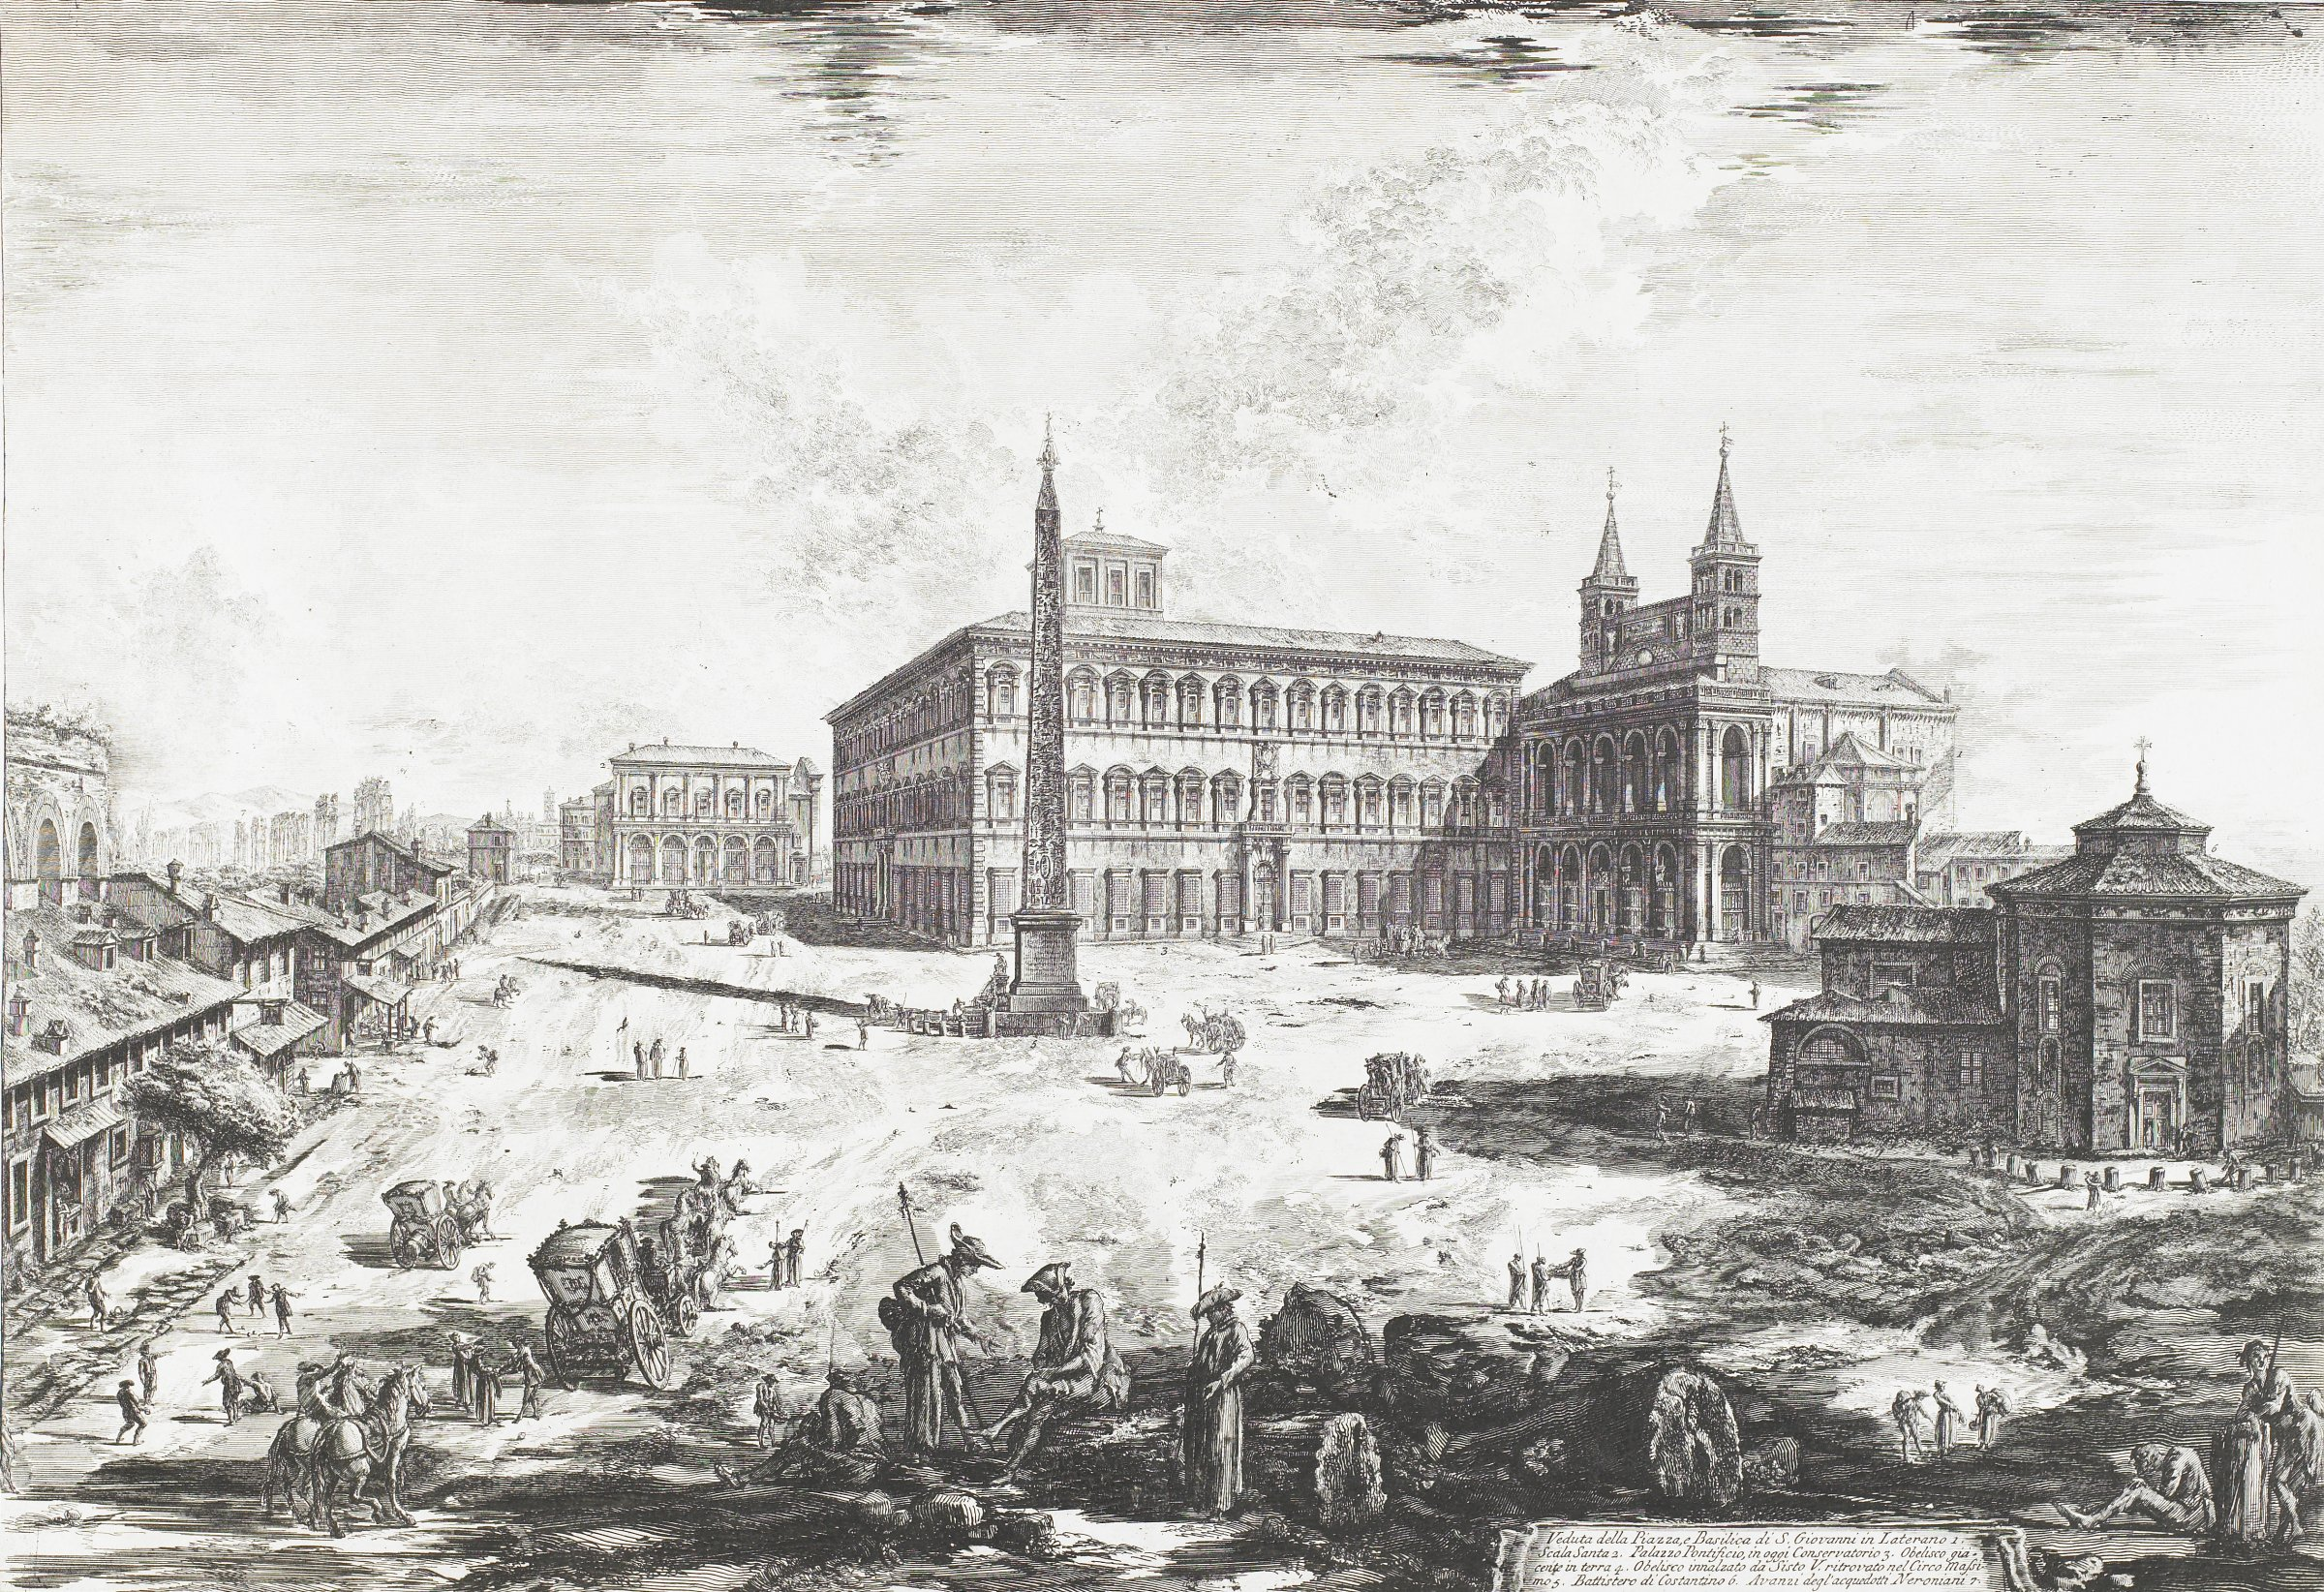 The Piazza and Basilica of San Giovanni in Laterano (side façade), with the Obelisk, Palace and Scala Santa on the left, Giovanni Battista Piranesi, etching on laid paper